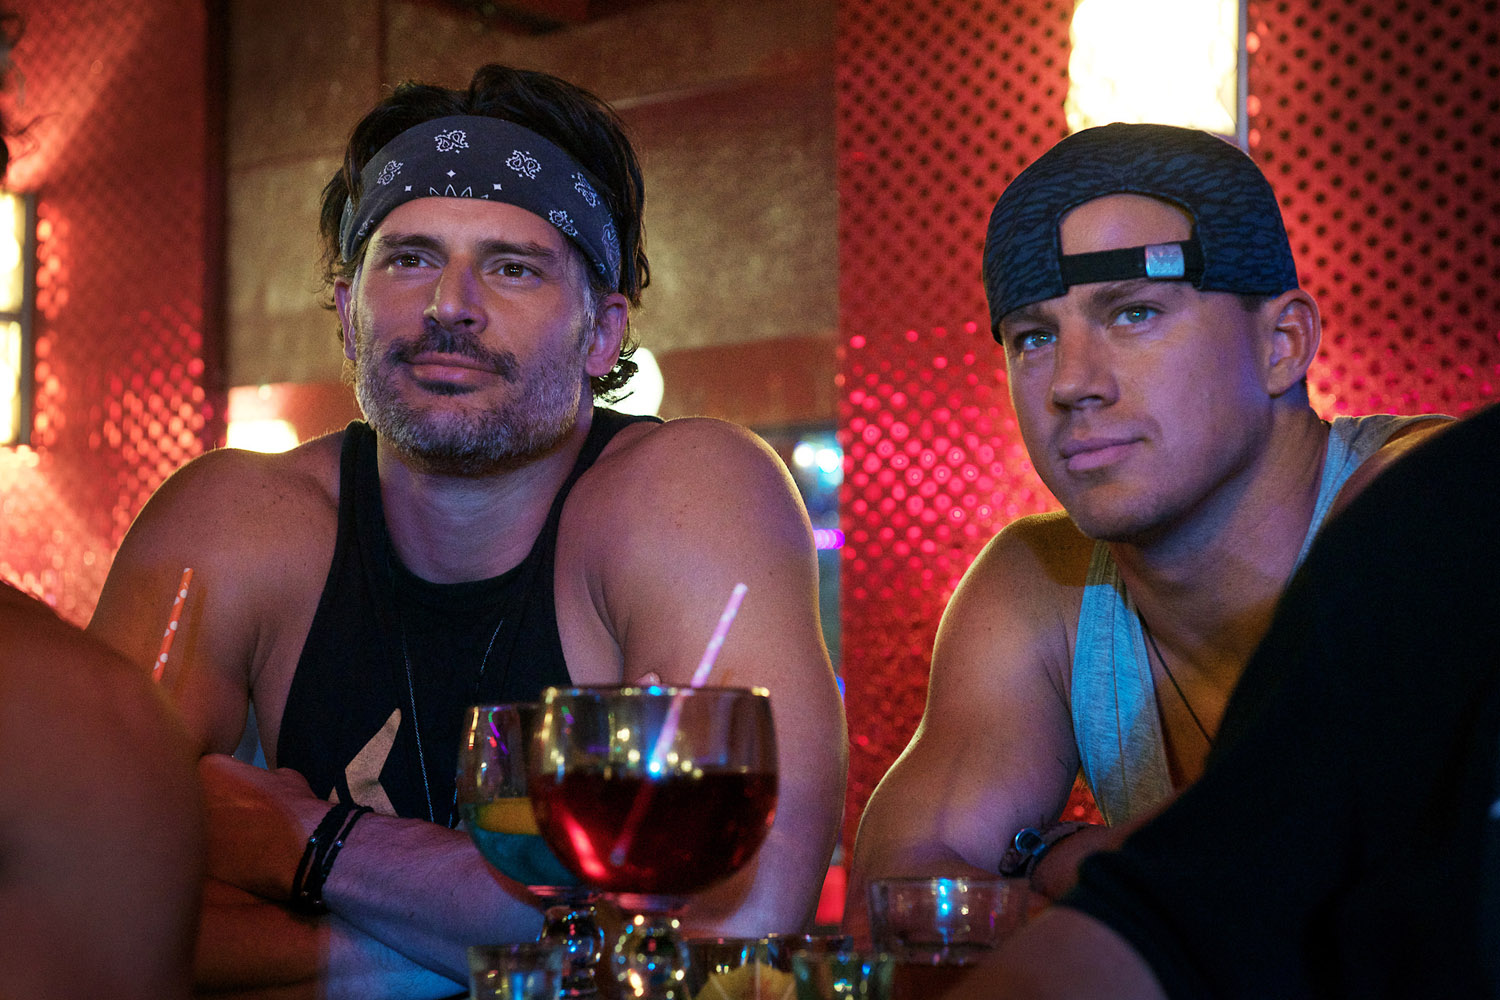 Channing Tatum, Joe Manganiello